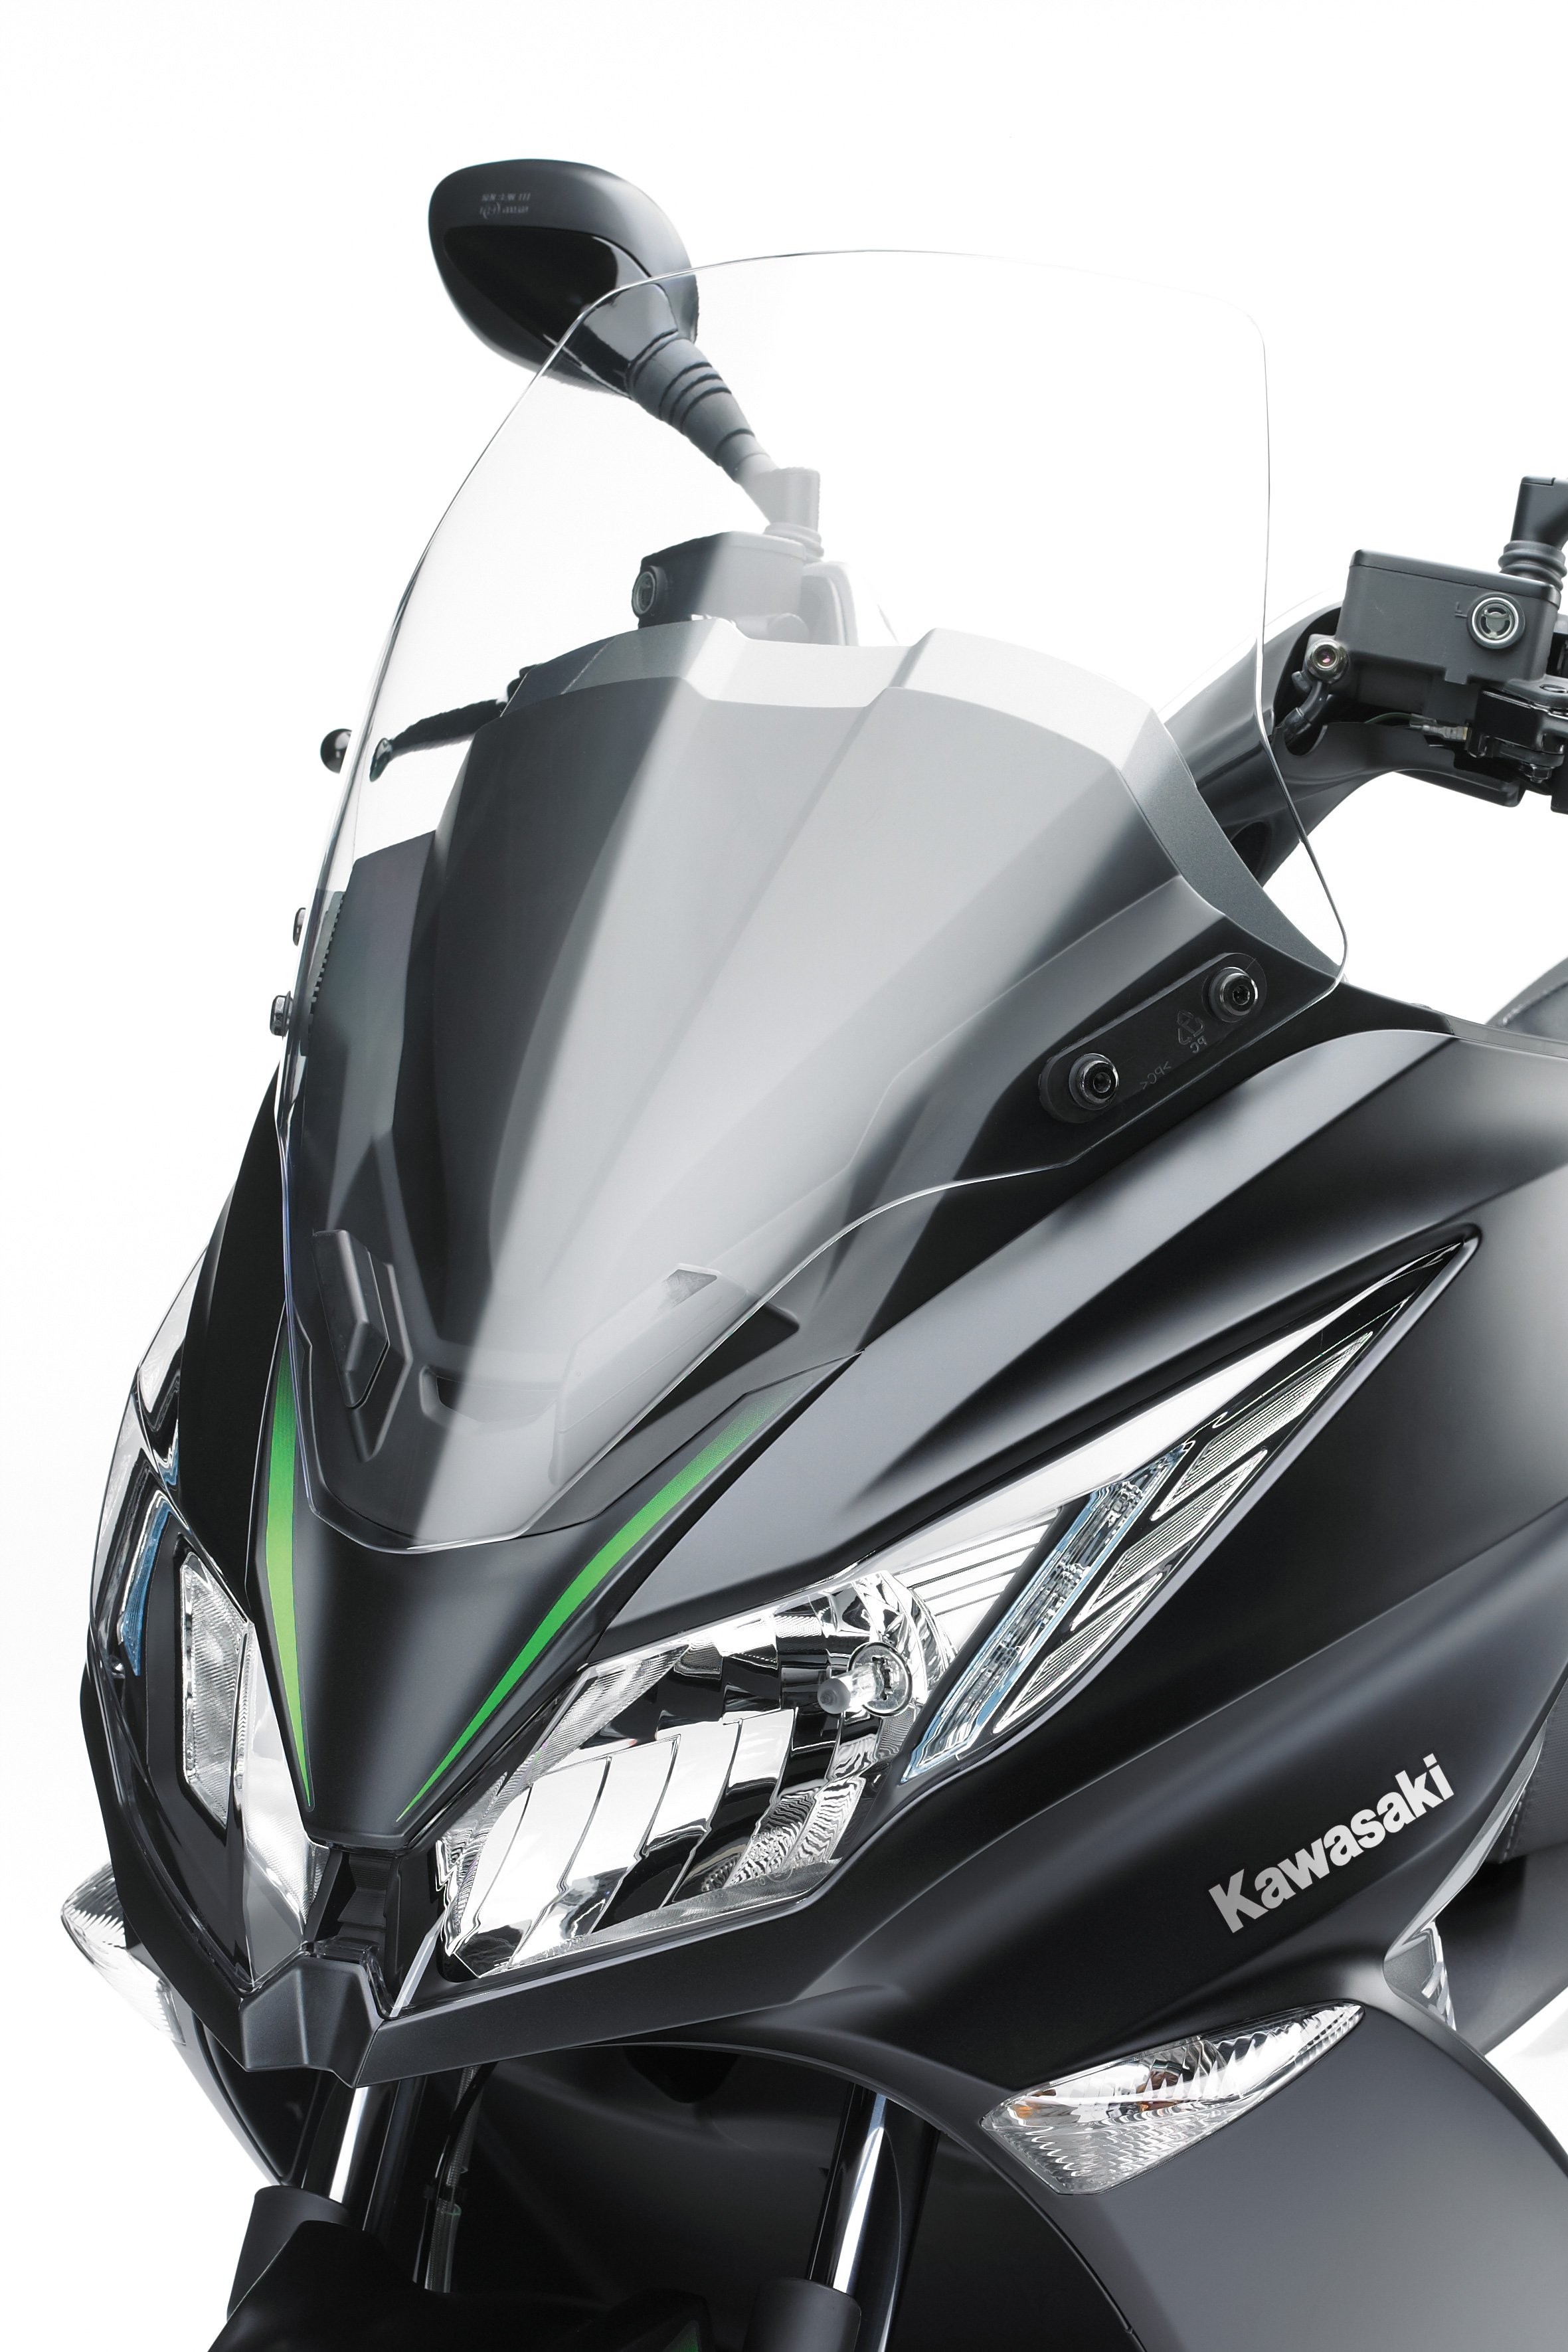 Kawasaki announces its first 125cc scooter - the J125